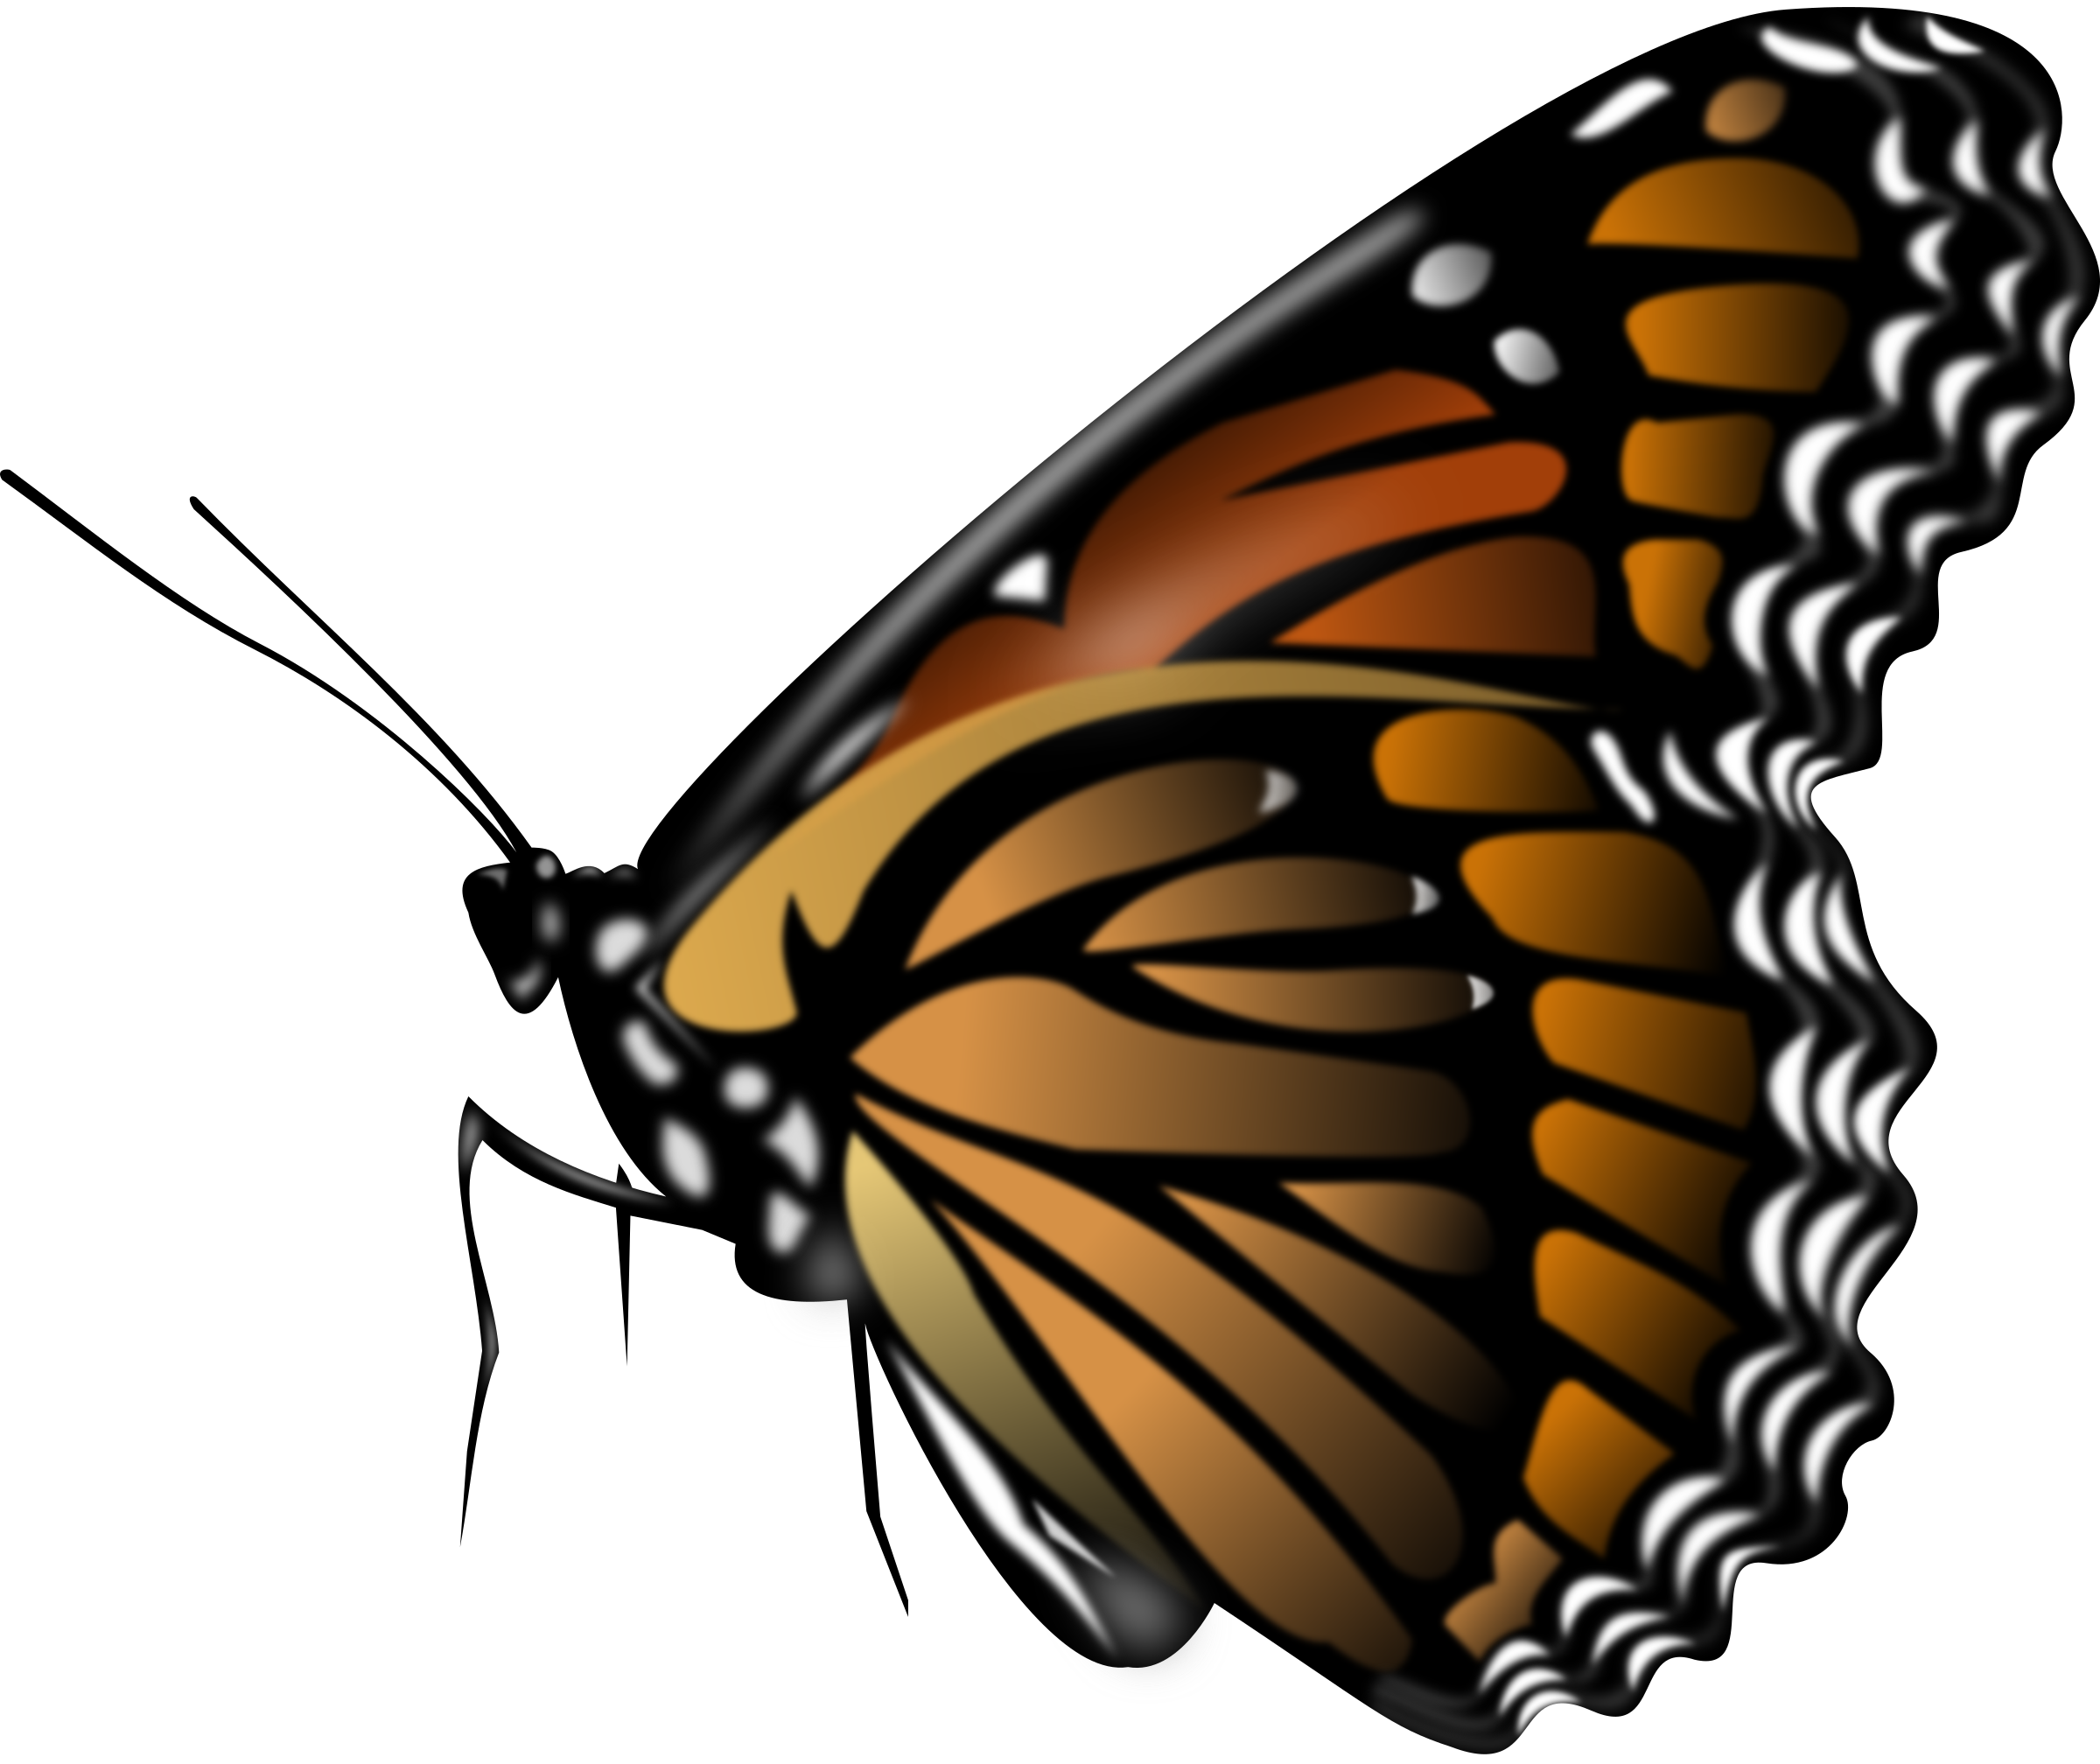 svg black and white download Butterfly. Monarch clipart